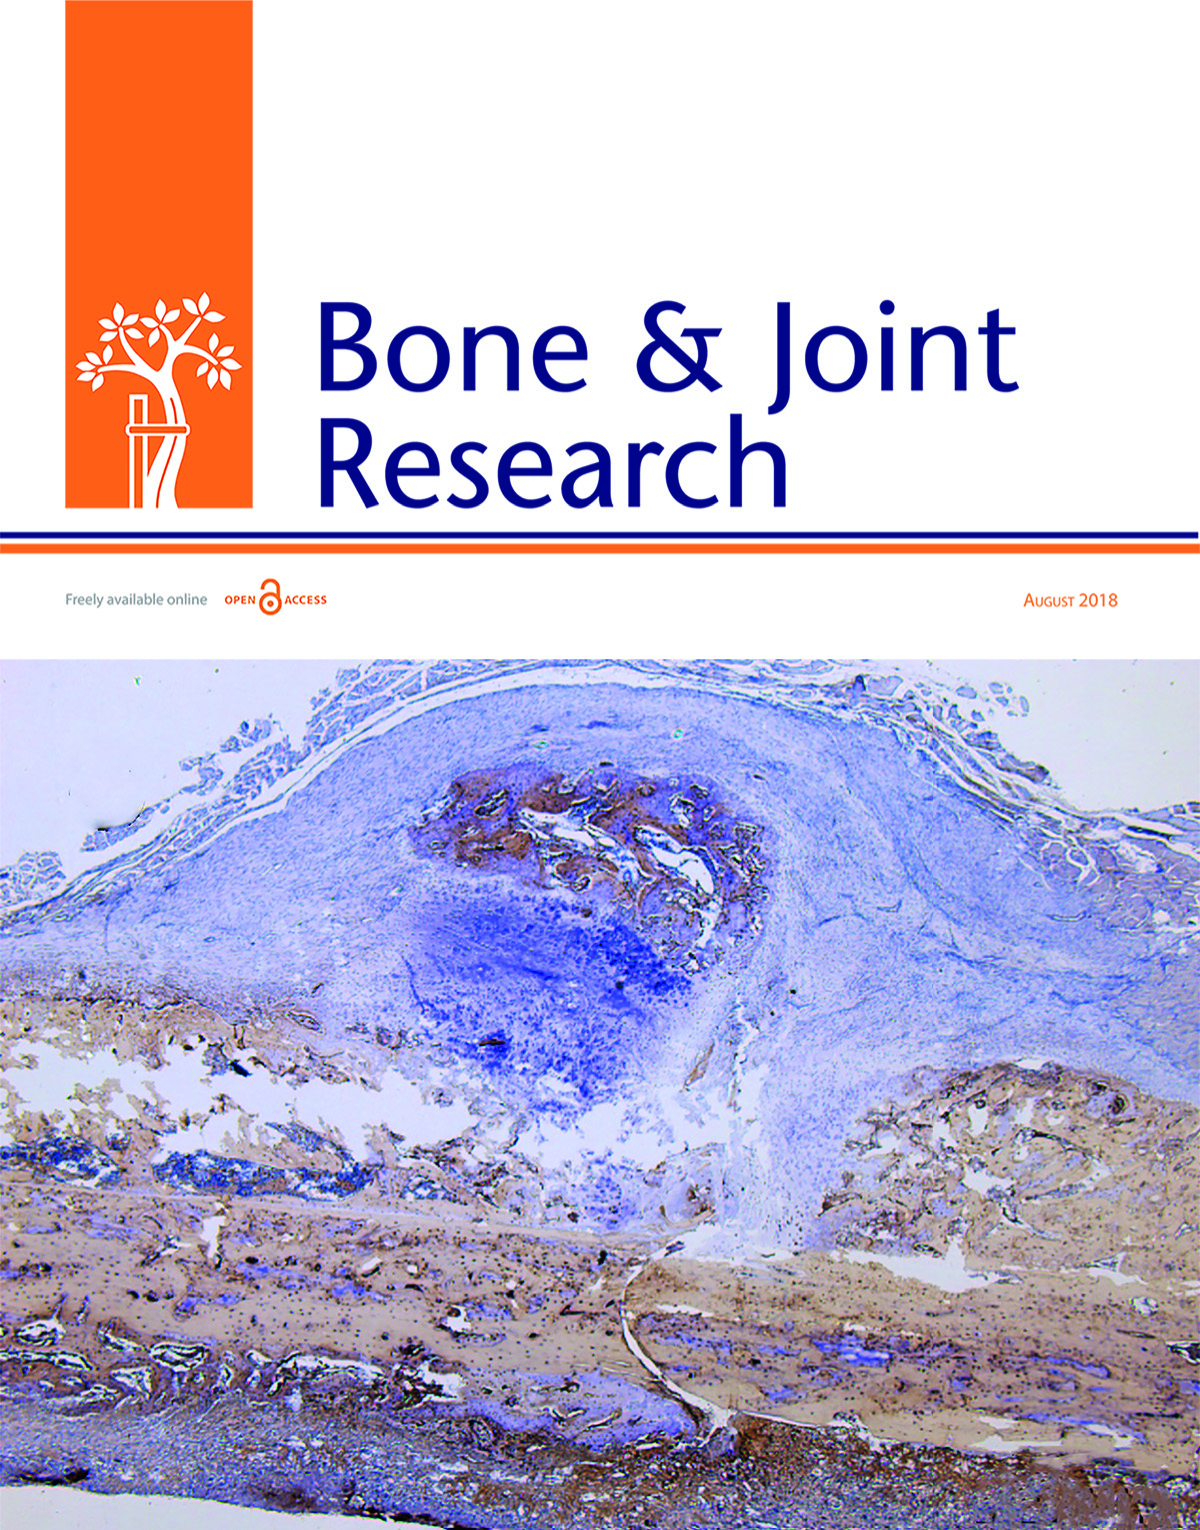 The biofilm eradication activity of acetic acid in the management of periprosthetic joint infection